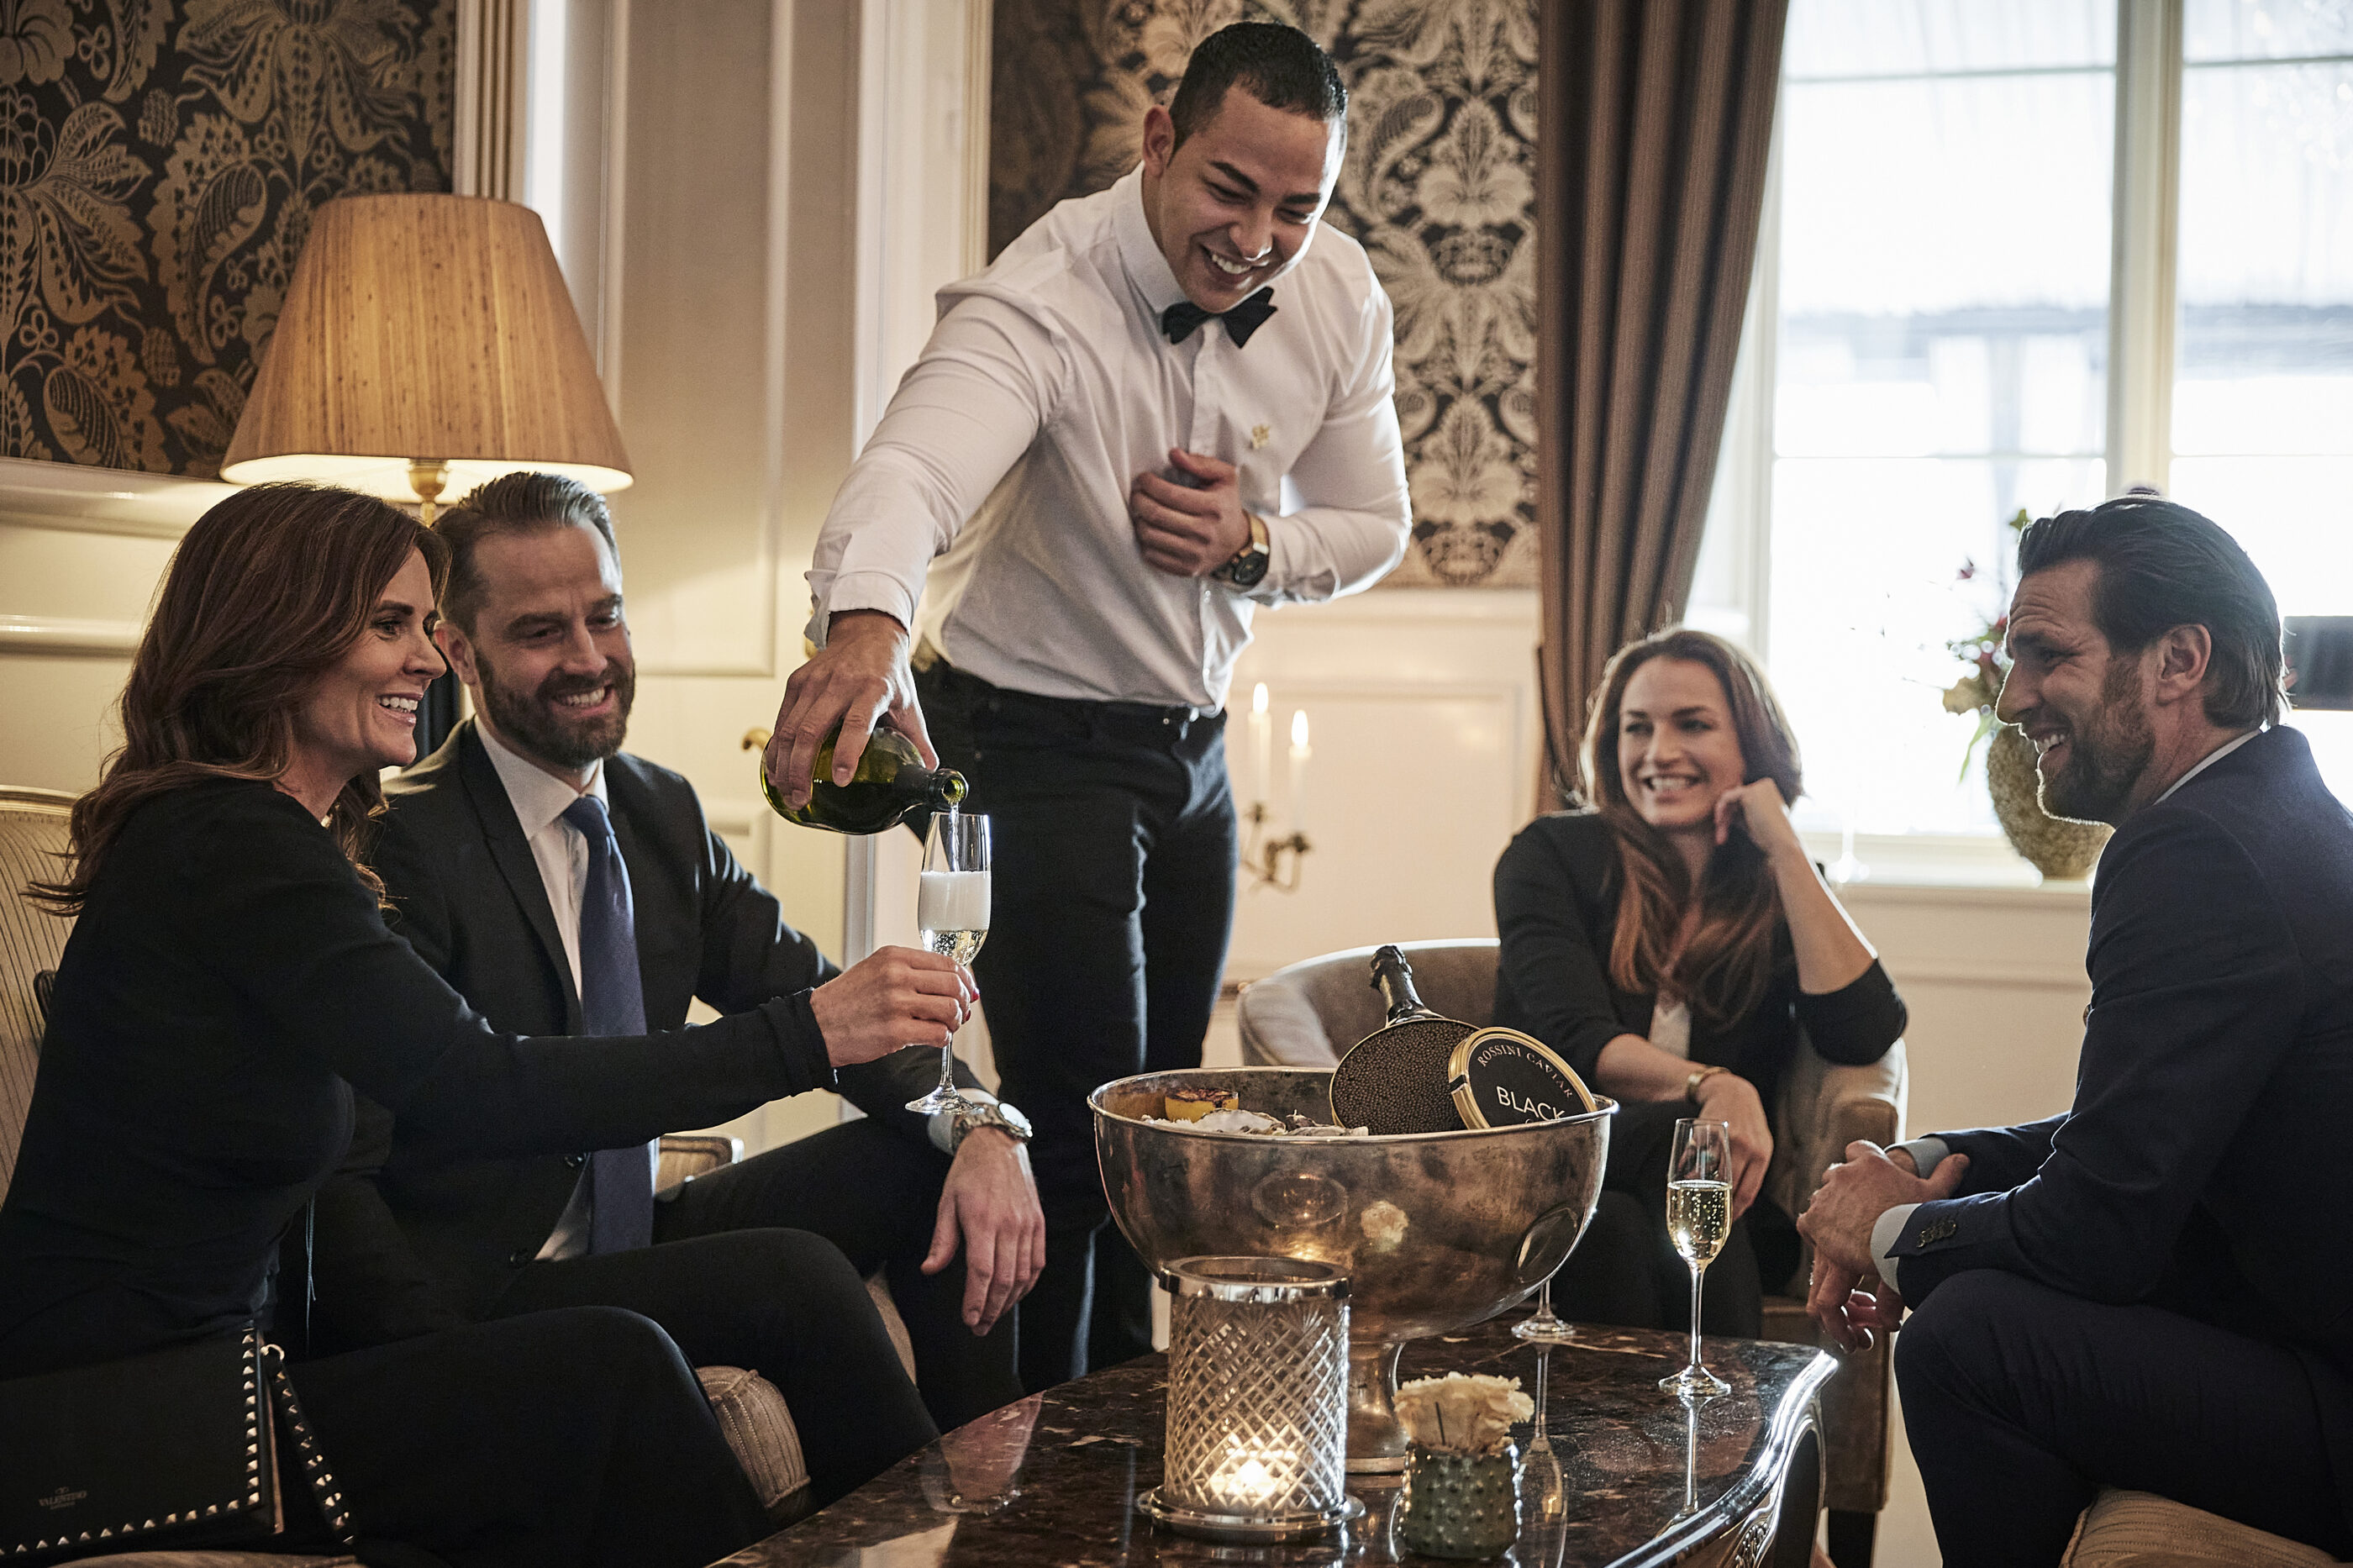 Waiter pouring champagne into glasses for guests